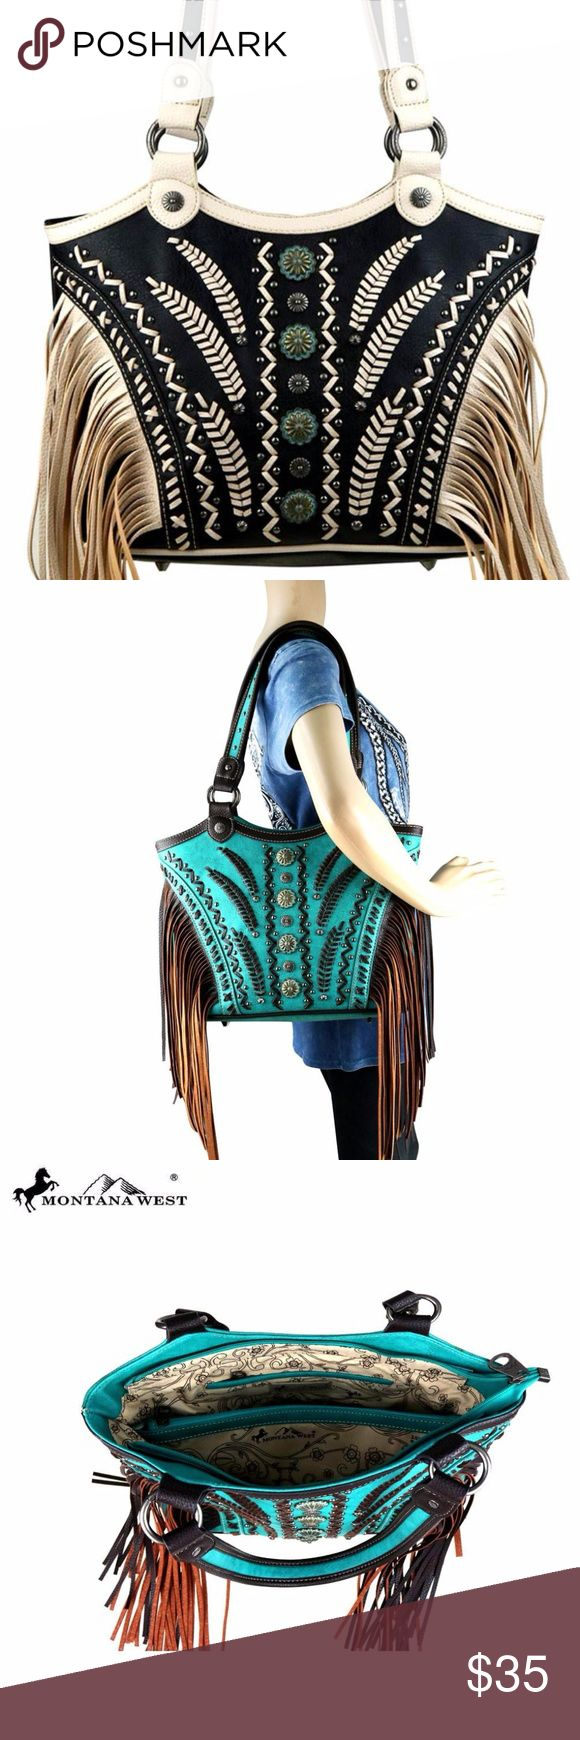 """Montana West Concealed Handgun Fringe Tote Made of PU leather, this tote bag has:  14.5"""" x 5""""  x 11 (Drop 11"""")  Accented with patina gold conchos and antique silver studs Saddle and tribal pattern stitch details Fringe on the sides A zipper enclosure on top of the bag Inside single compartment divided by a medium zippered pocket Inside of bag include a zippered pocket and 2 open pockets  A zippered pocket on the back to conceal the handgun (9.5 x 5.5) An open pocket on the back Metal feet on…"""